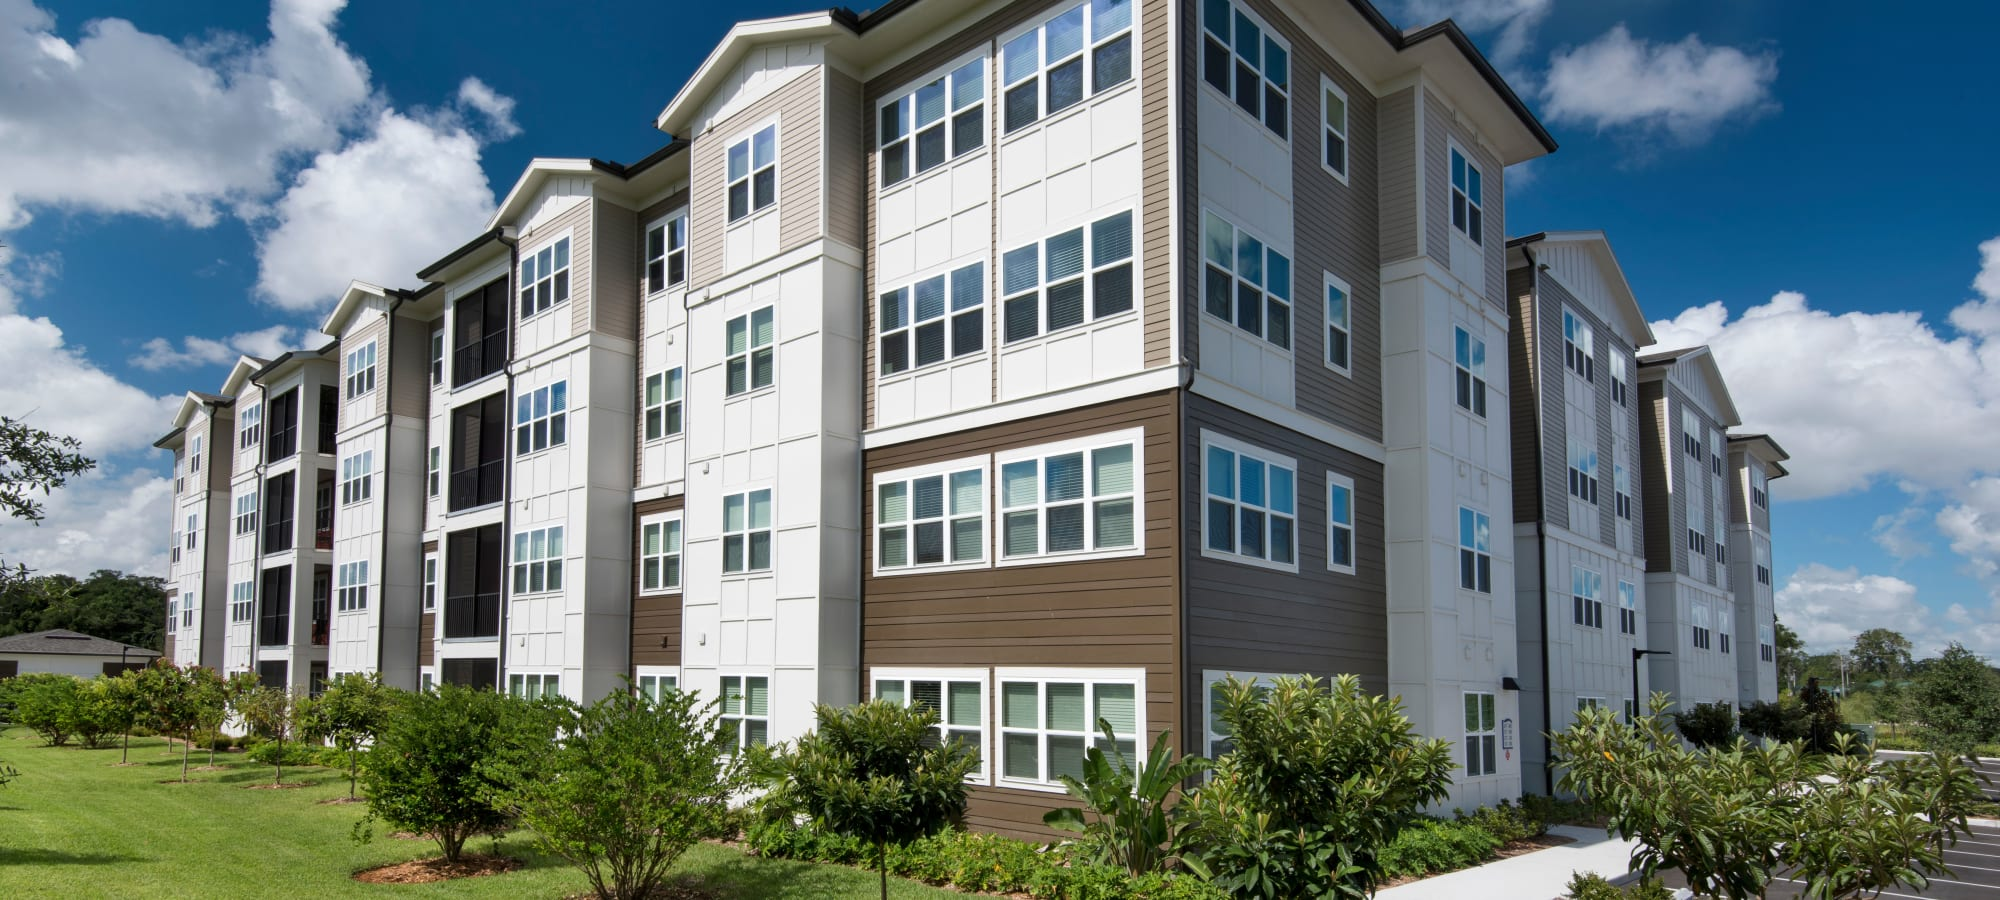 Apartments in Casselberry, Florida at Integra Lakes